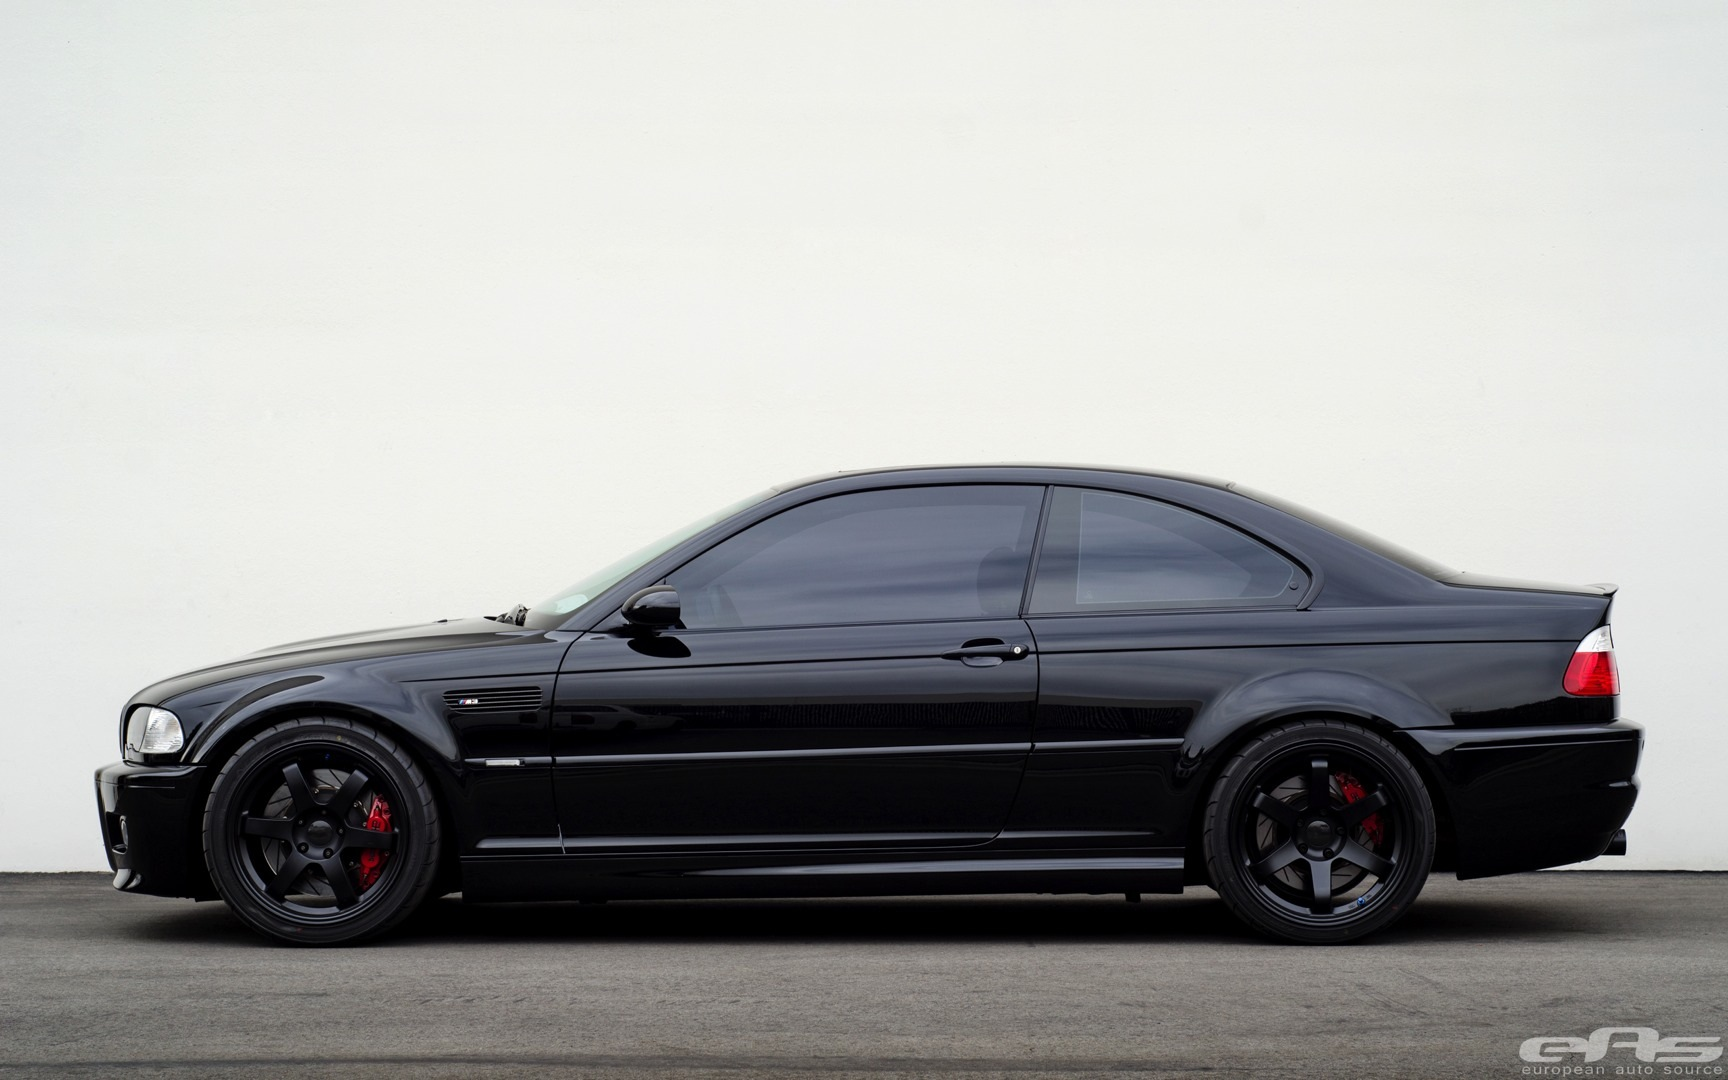 Black on Black BMW E46 M3 Looks Brand New  autoevolution